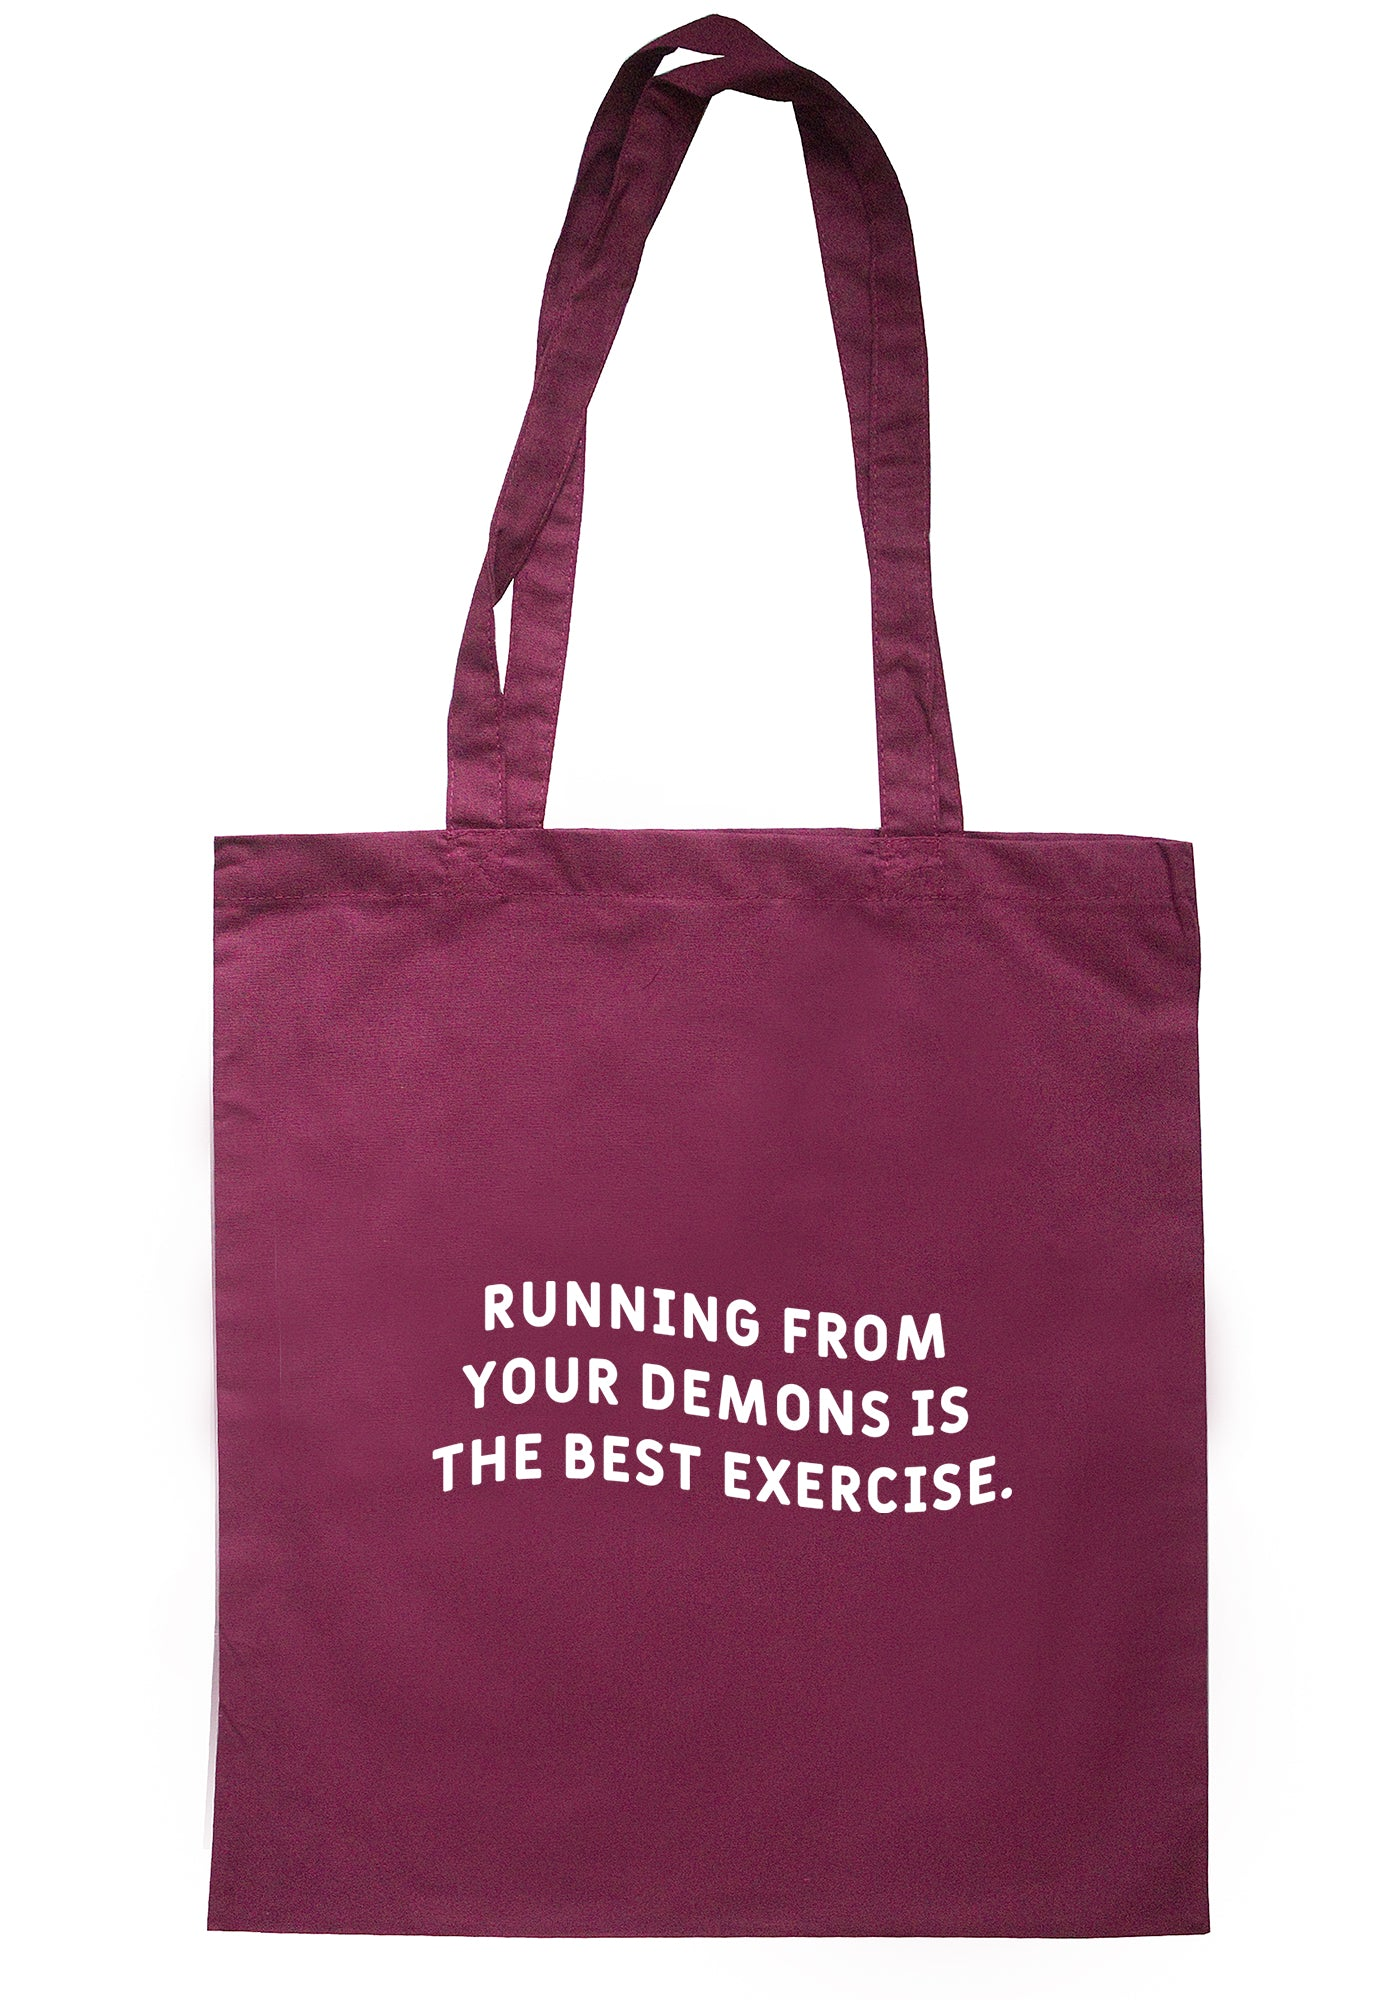 Running From Your Demons Is The Best Exercise Tote Bag S1166 - Illustrated Identity Ltd.